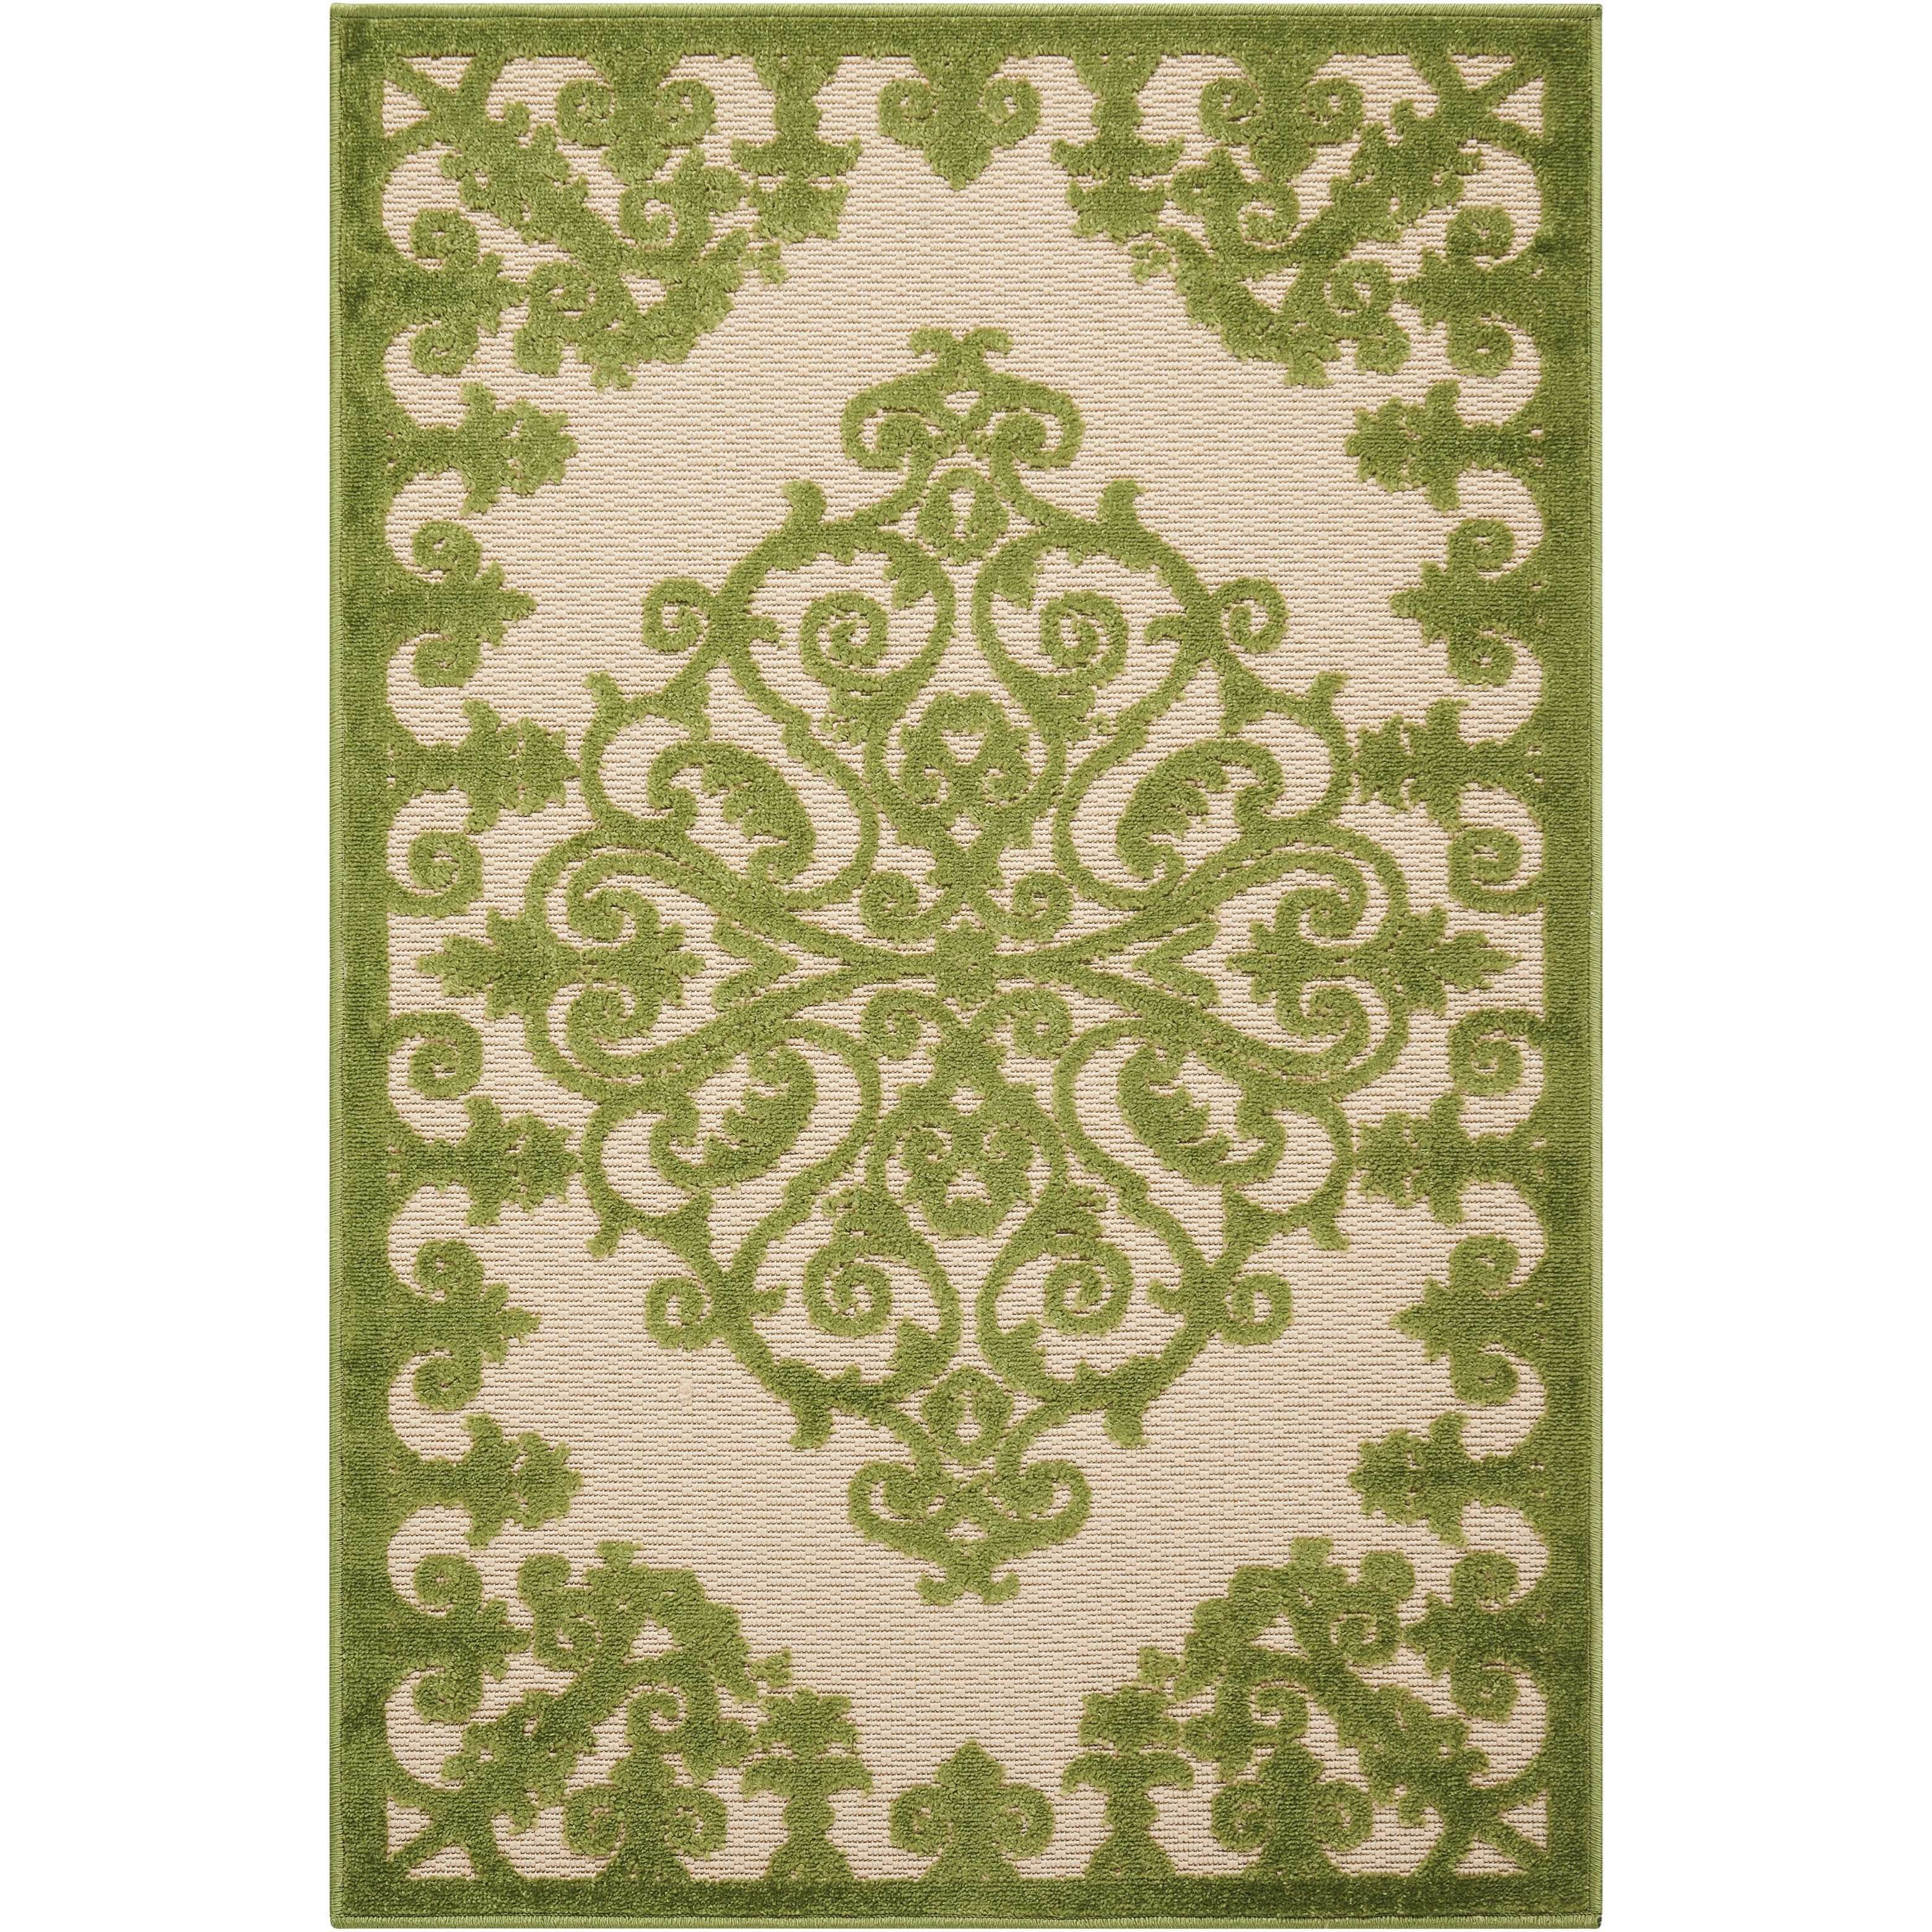 "2'8"" x 4' Green Rectangle Rug"